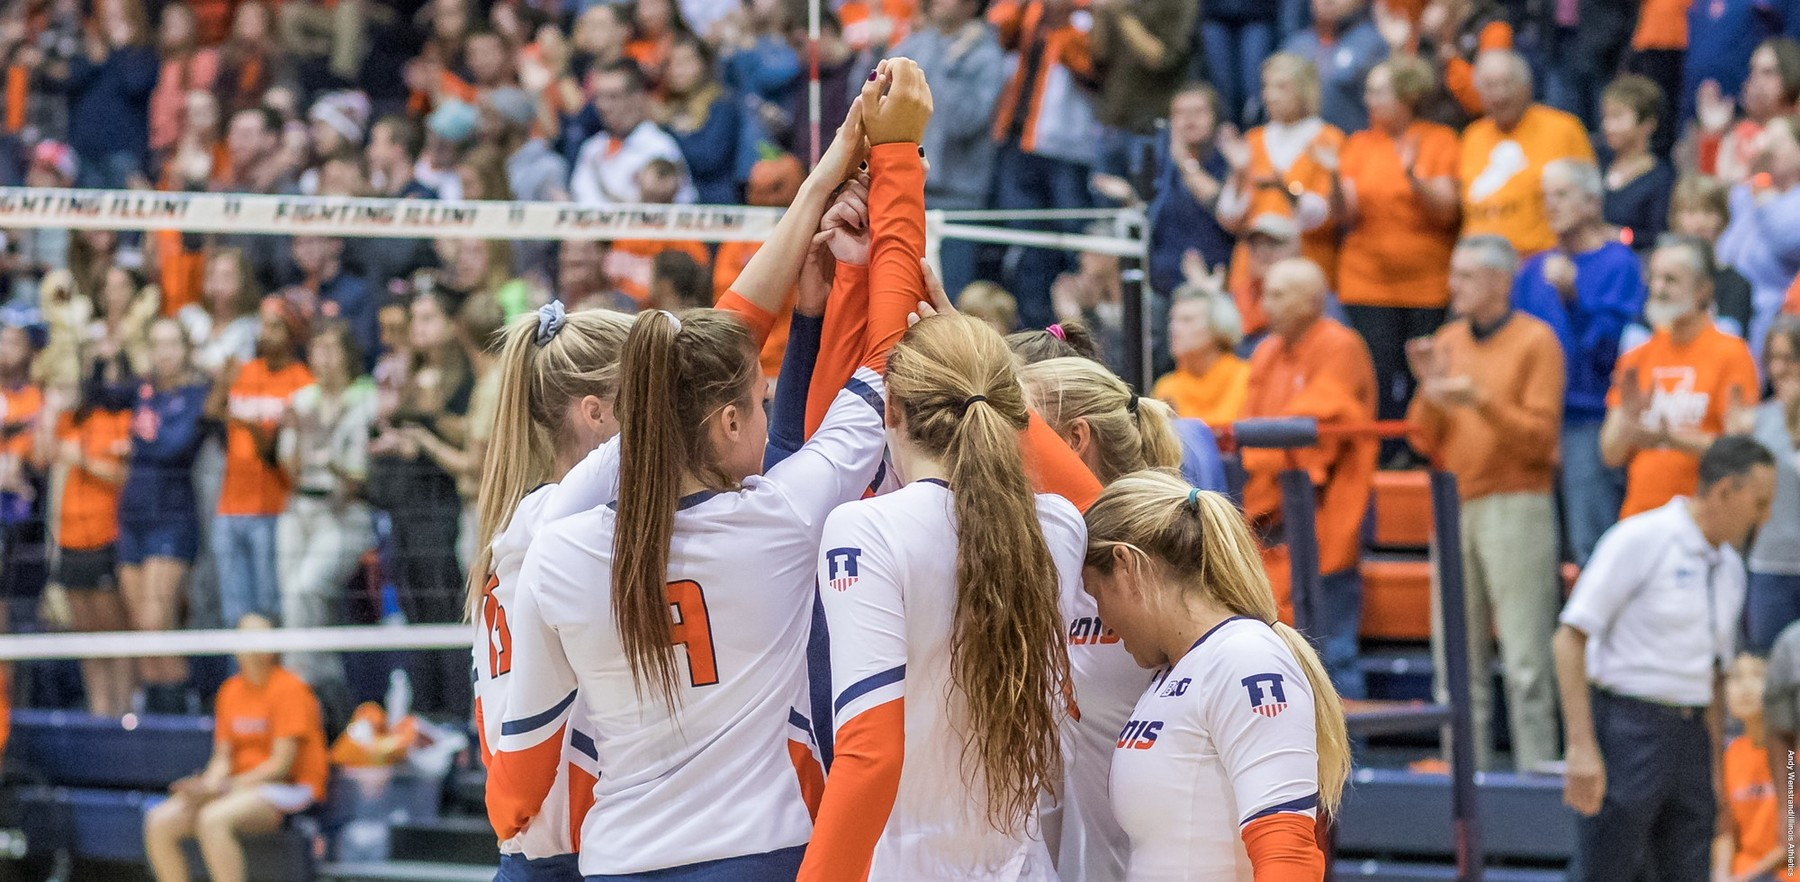 volleyball players huddle on the court